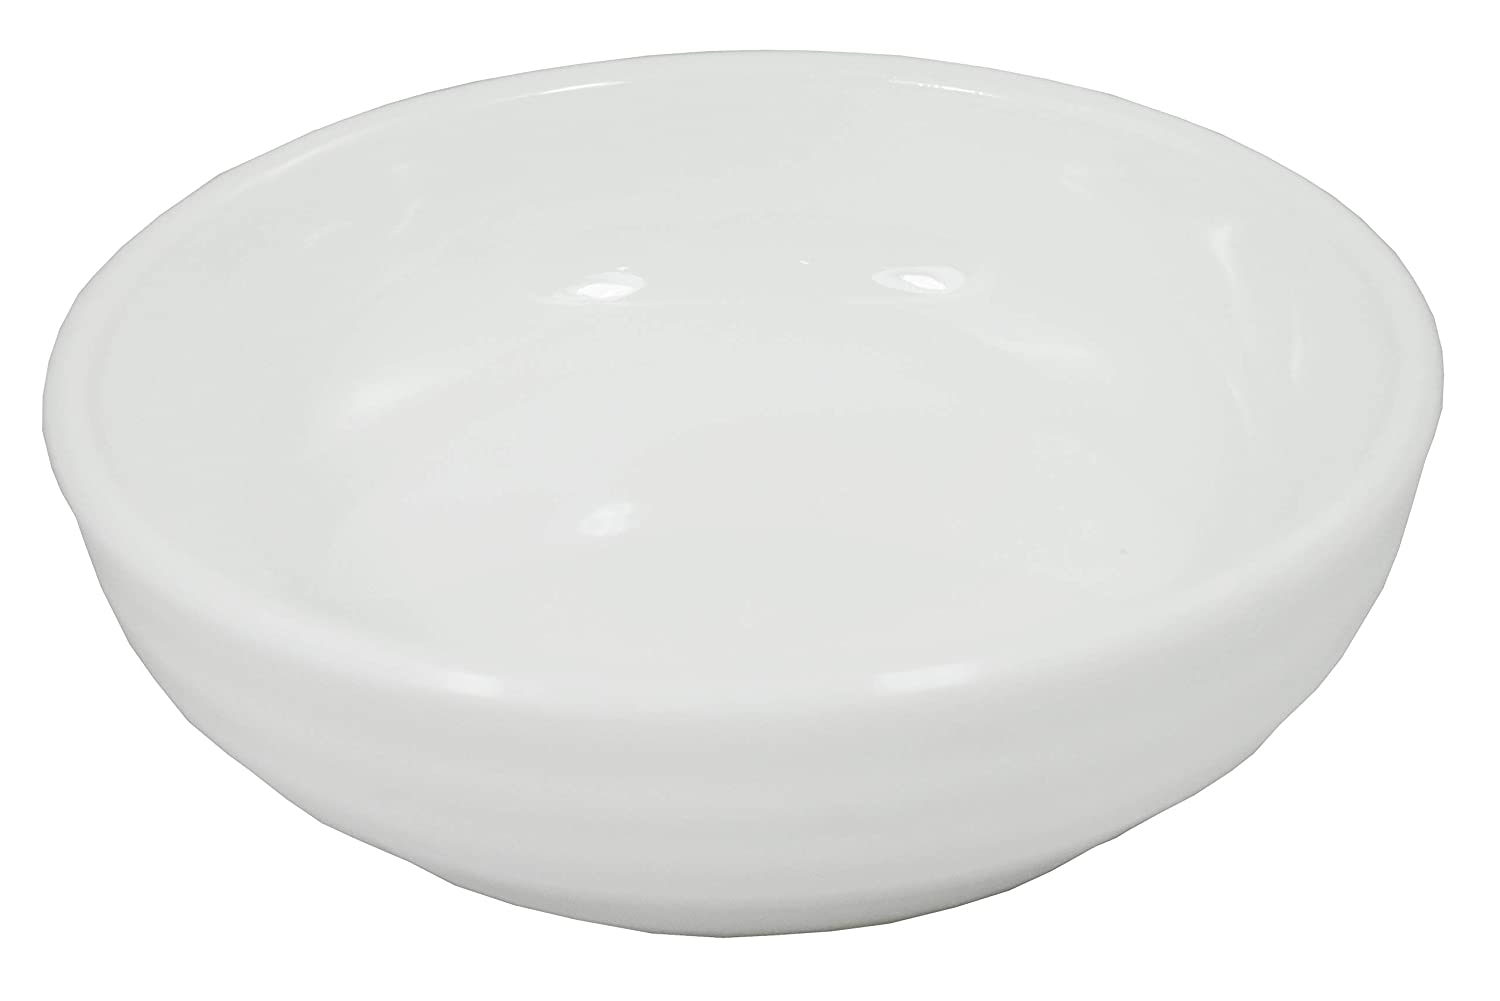 (Pack of 12) Super White Round Ribbed Porcelain Sauce Dishes OT-3328 61aGJQhle-L